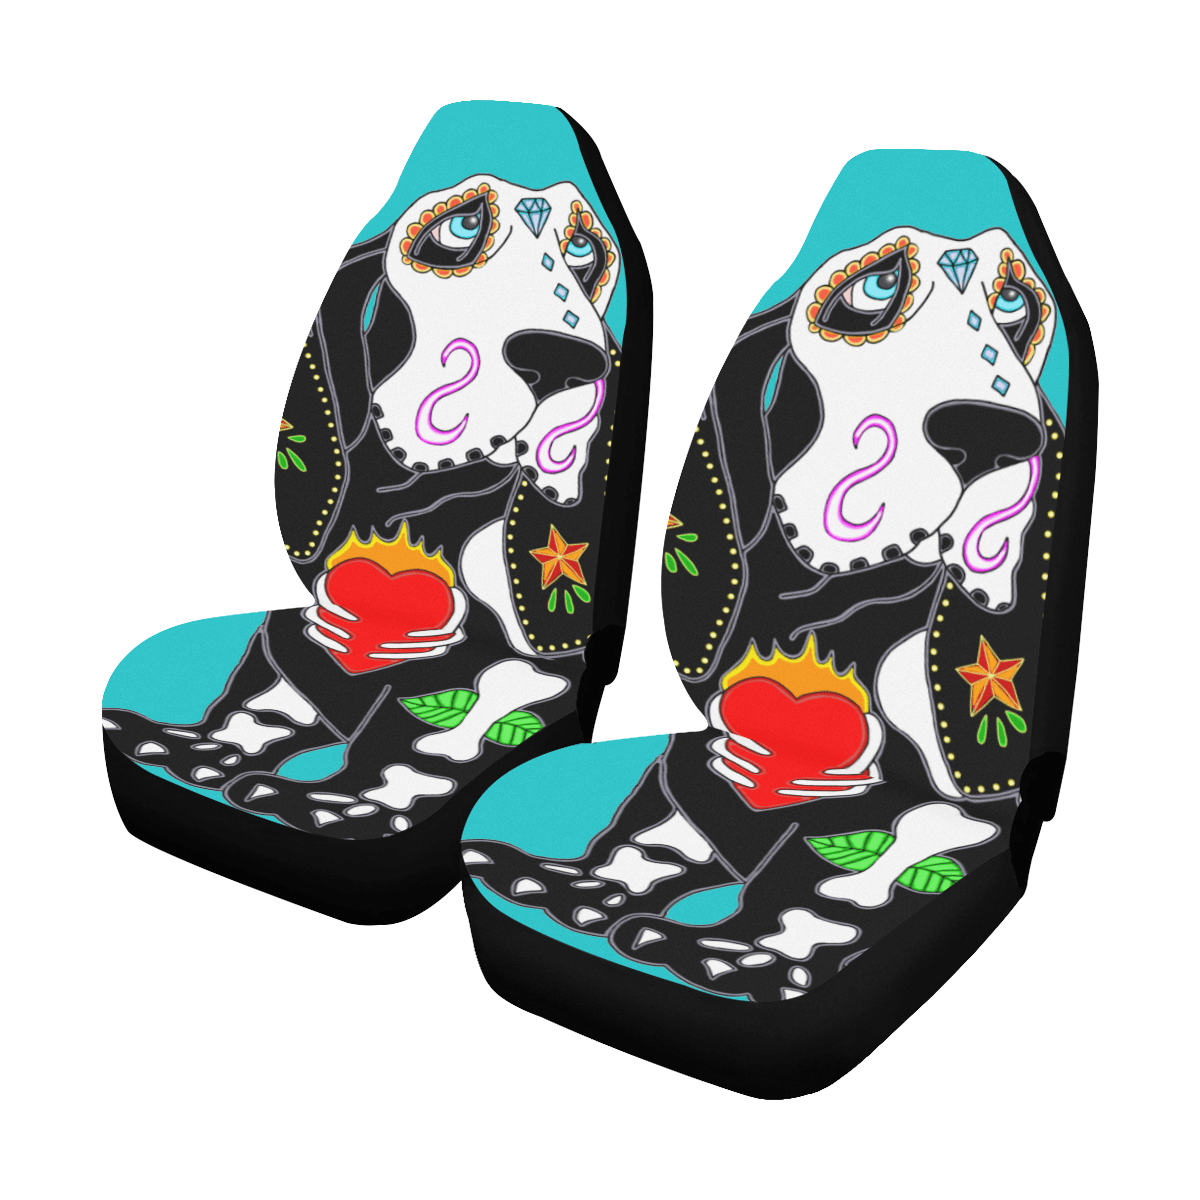 basset hound sugar skull turquoise car seat covers set of 2 id d3007074